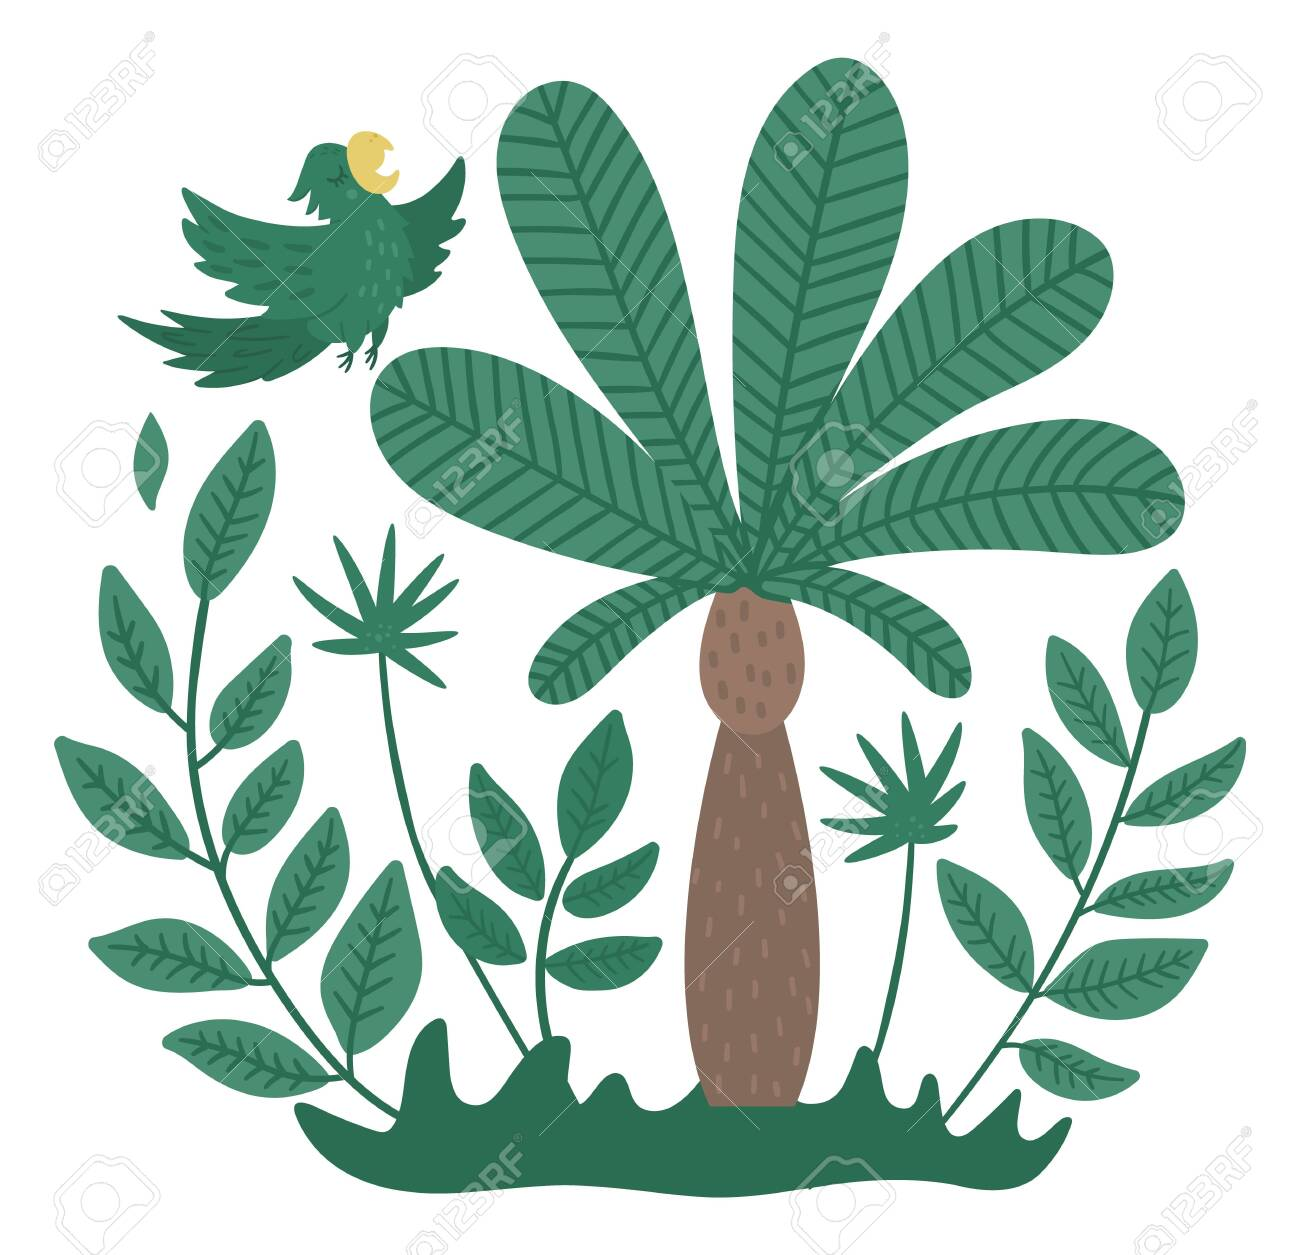 Vector Cute Tropical Forest Composition With Flying Parrot Palm Royalty Free Cliparts Vectors And Stock Illustration Image 144753275 Free for commercial use no attribution required high quality images. 123rf com